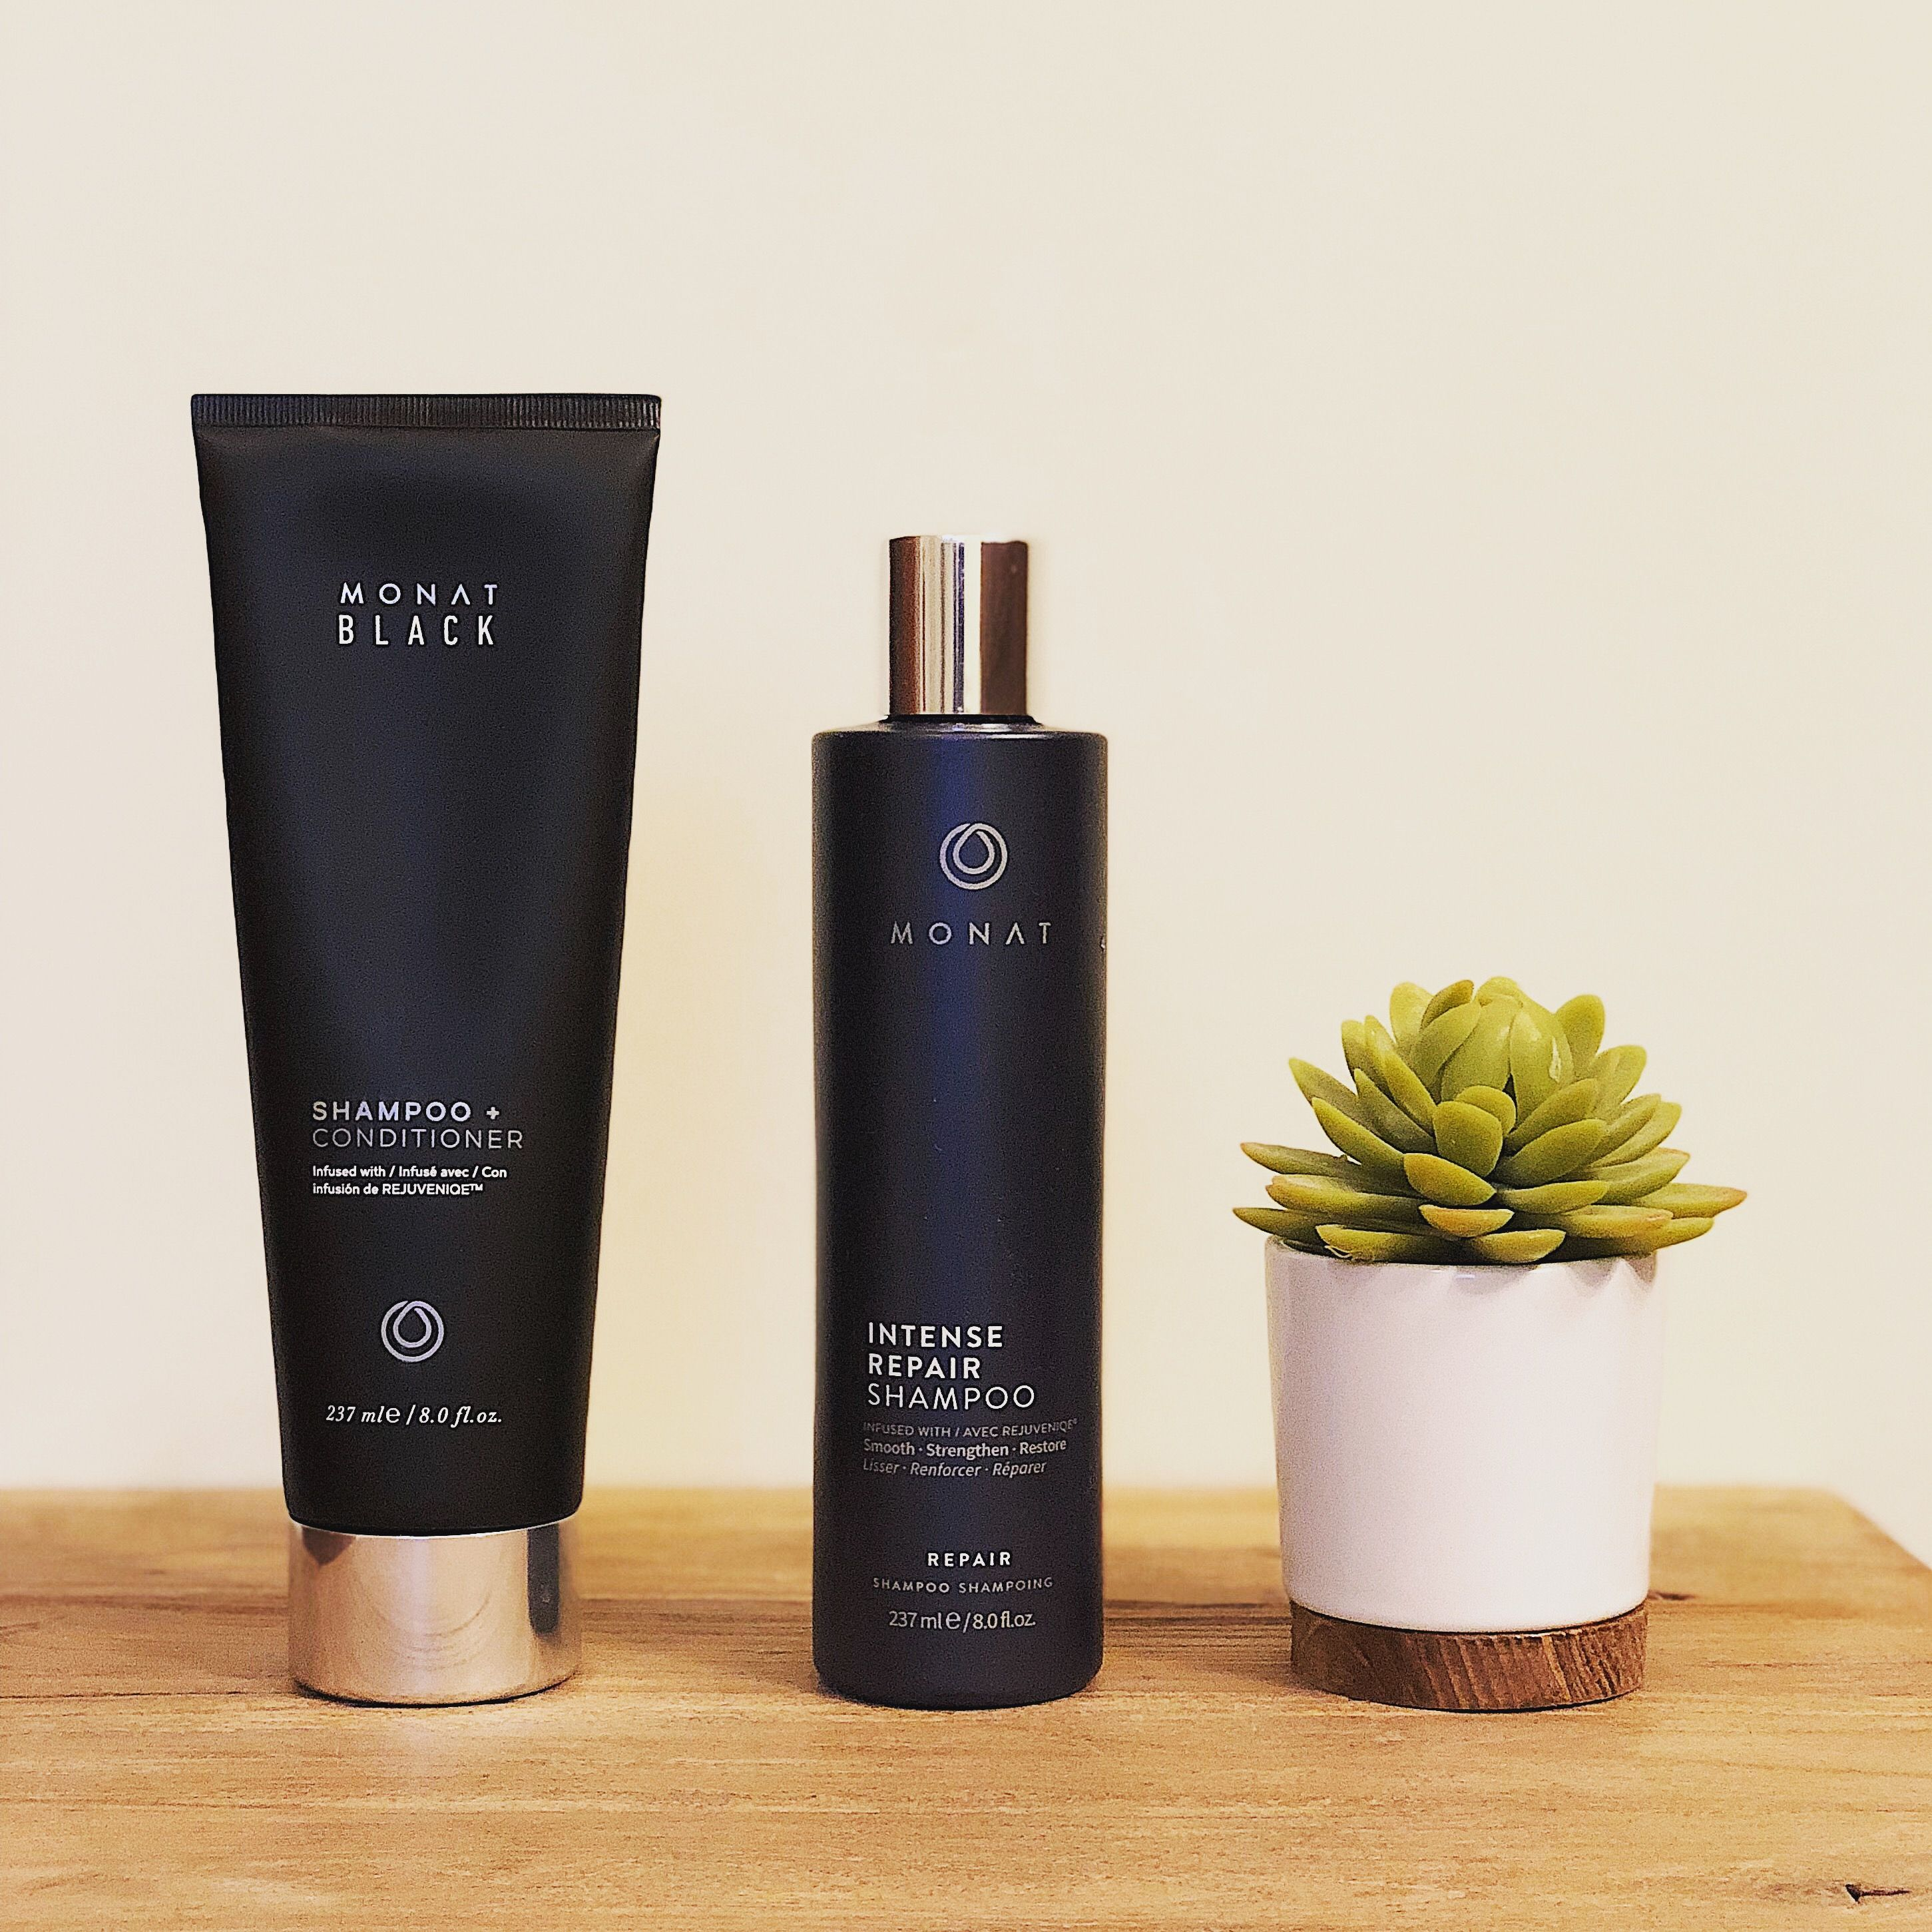 monat stopping hair loss one bottle at a time